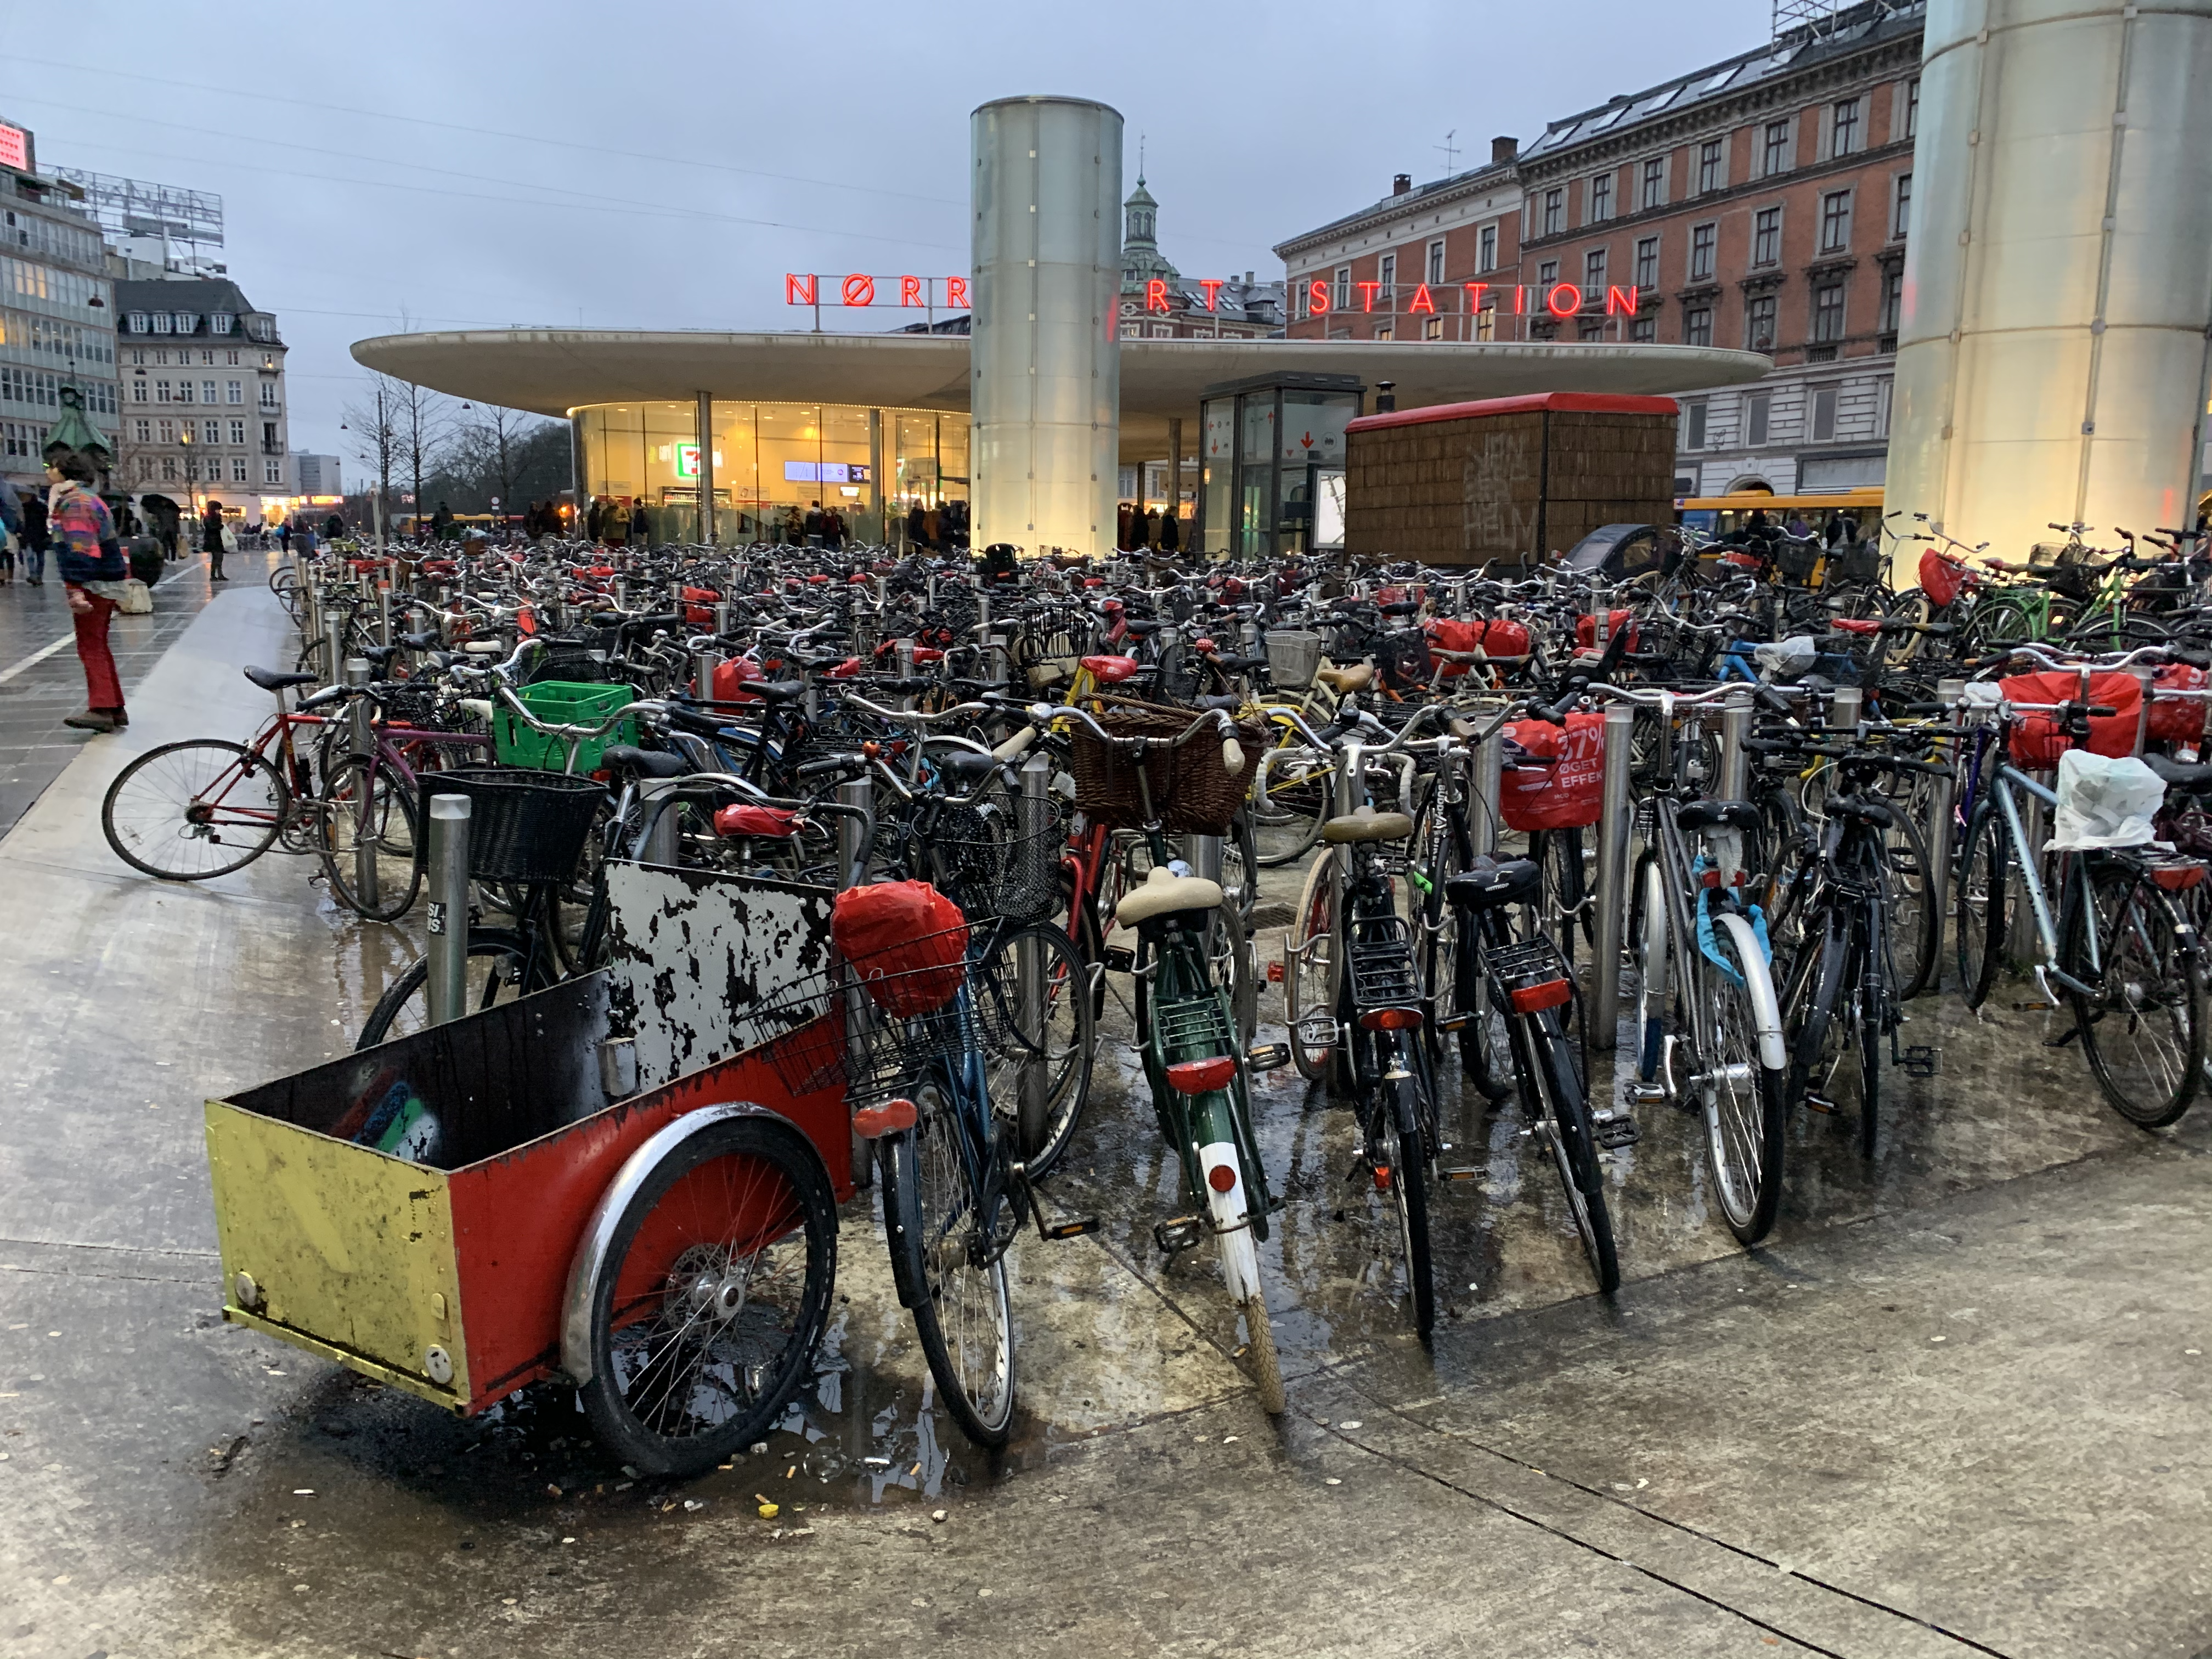 A large group of bikes at a market in Copenhagen